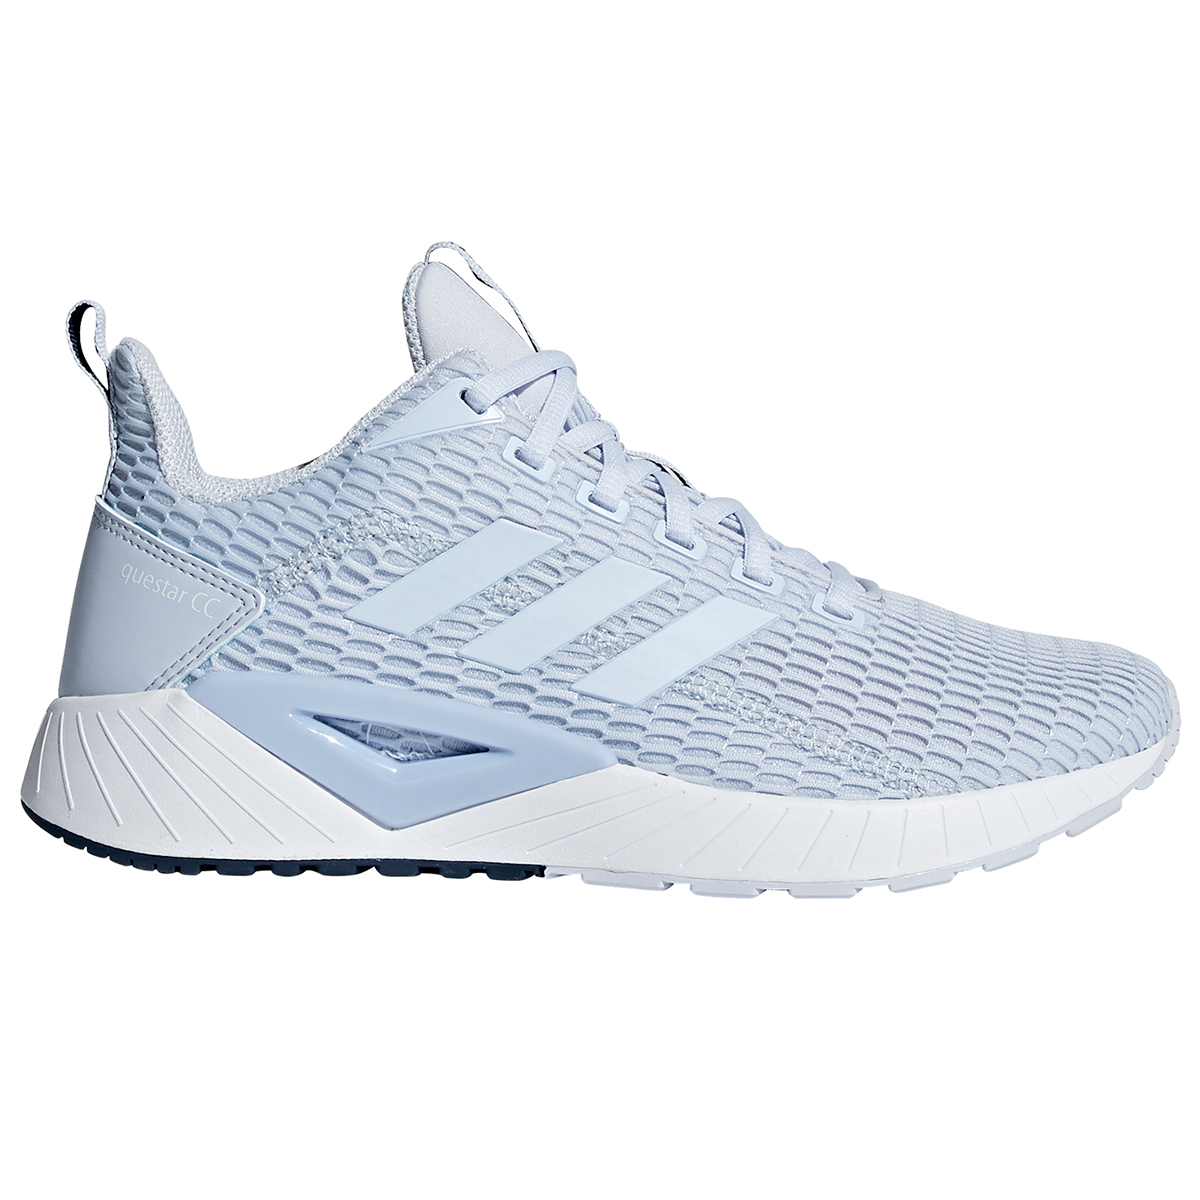 new style 87455 39596 Details about Adidas Women's Questar Cc Running Shoes